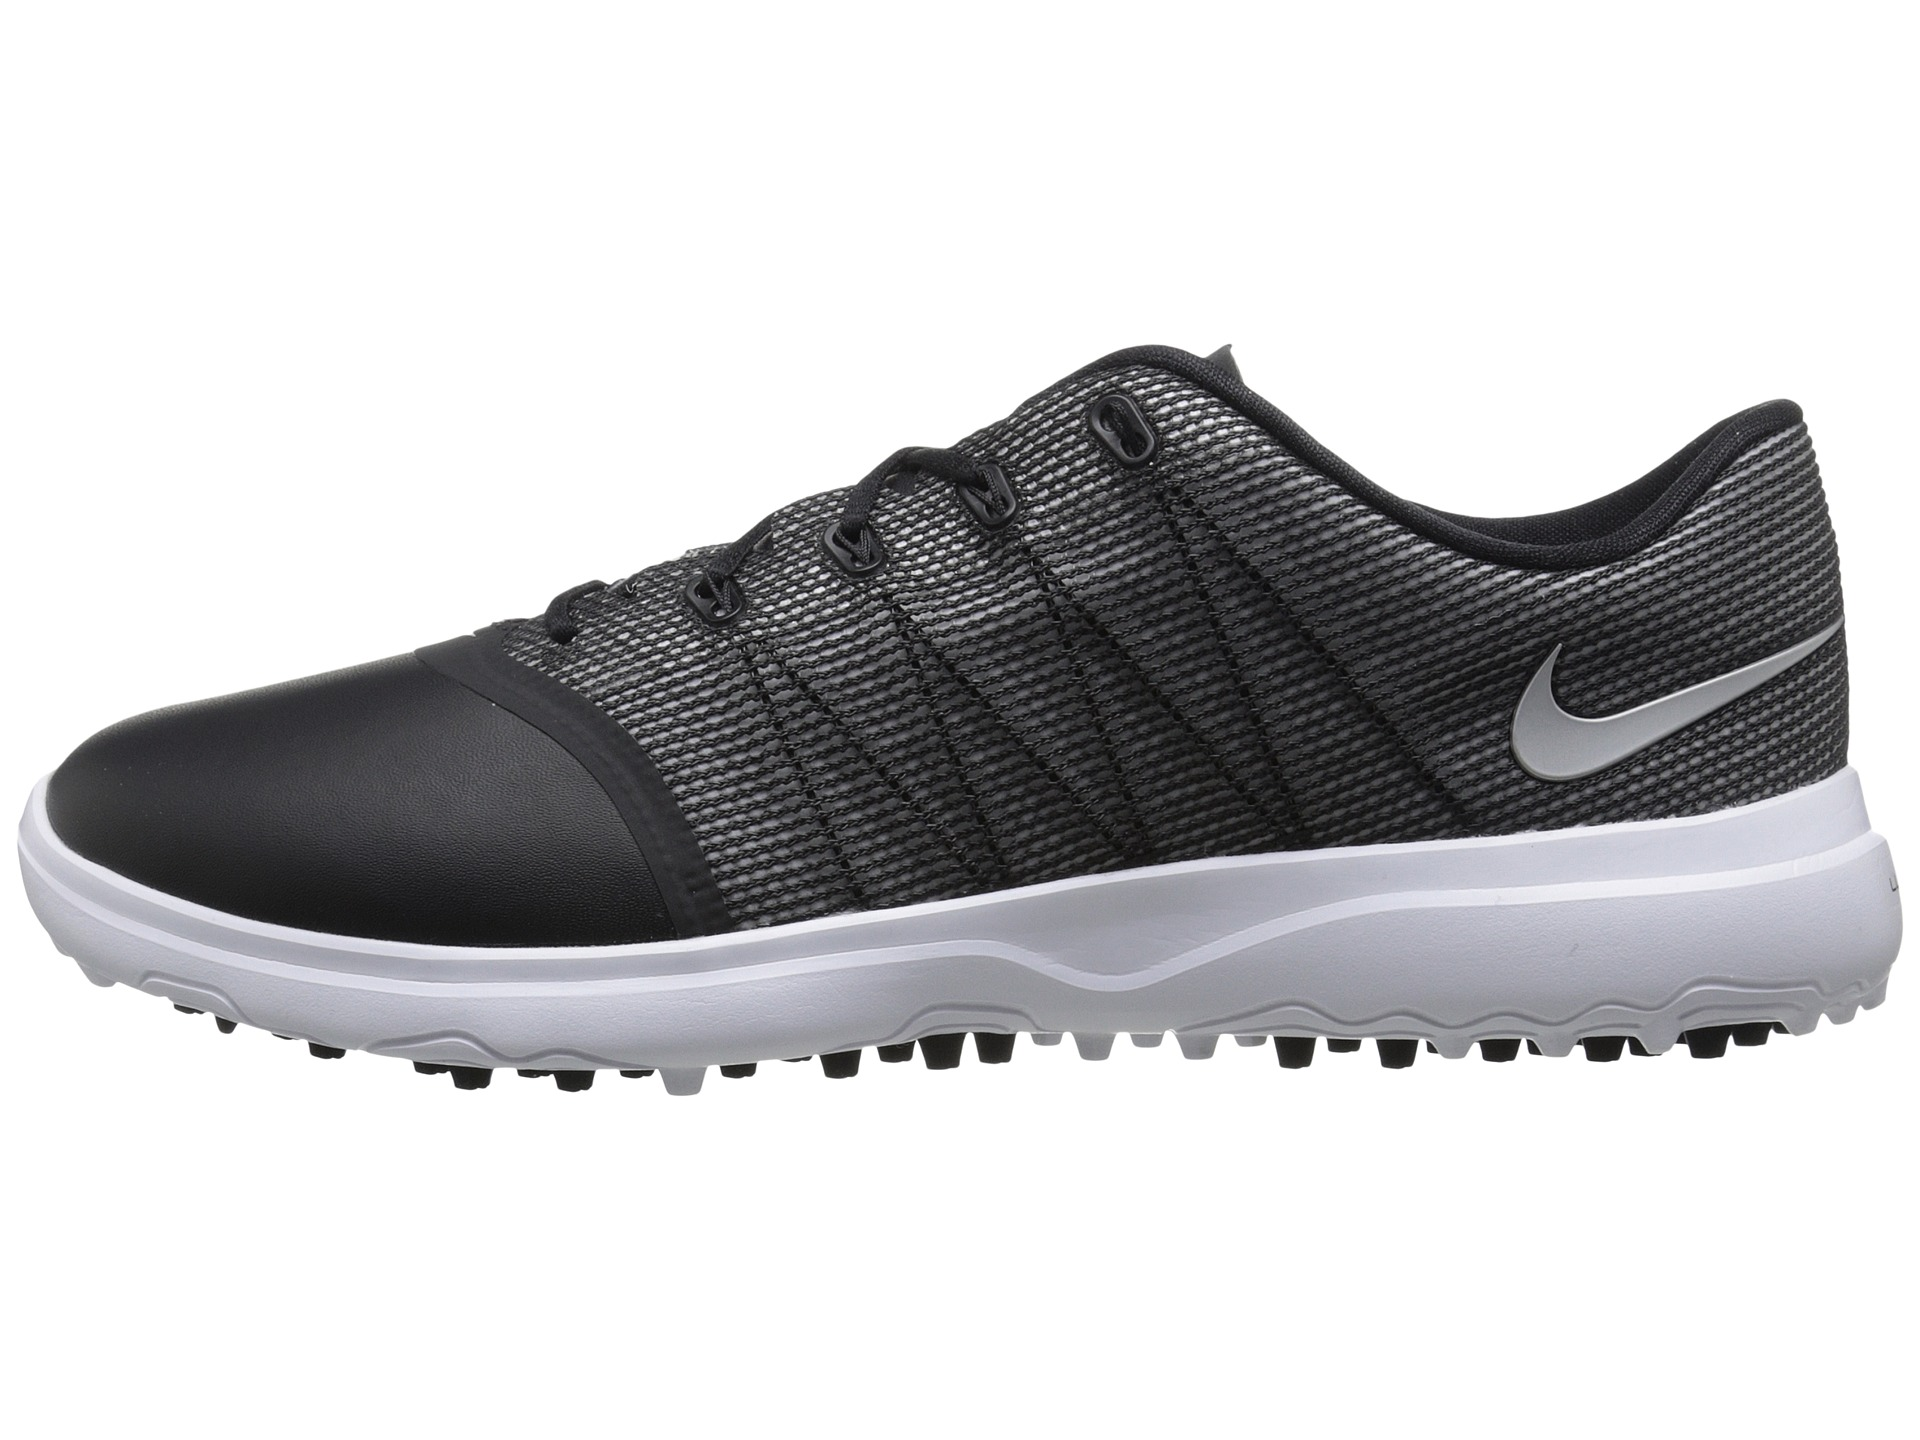 NIke Womens Lunar Empress 2 Golf Shoes 2016 Black; Video